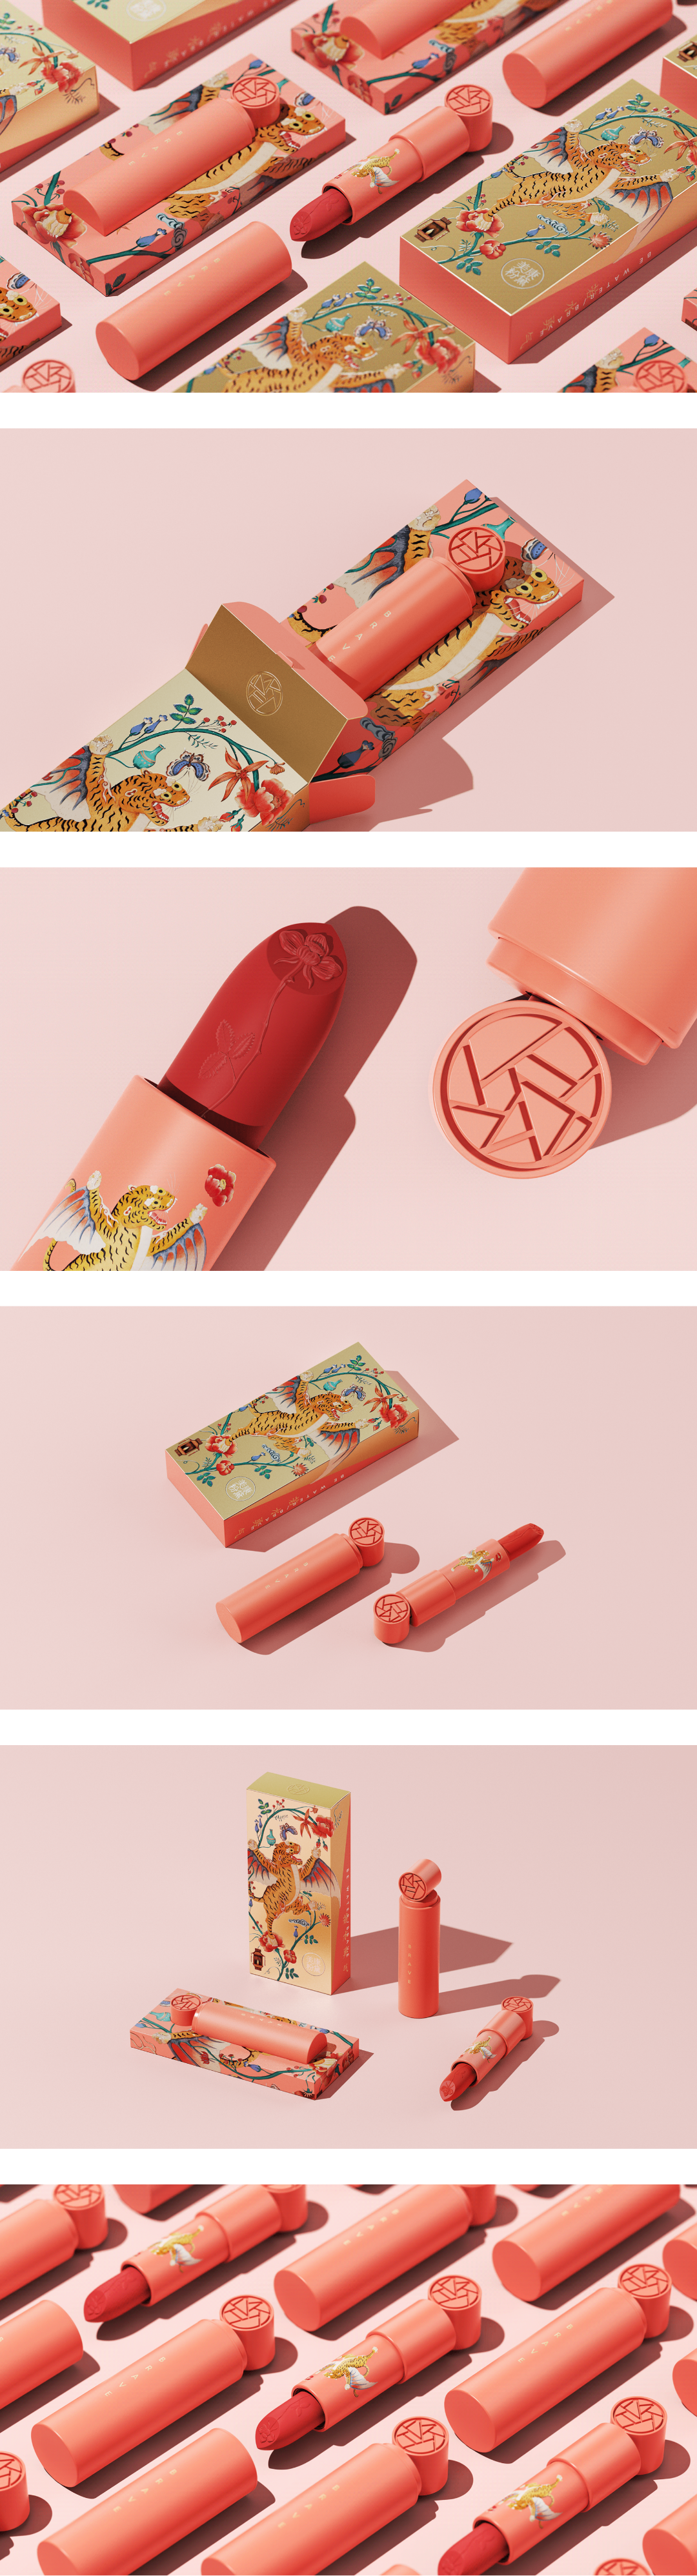 Animation,Packaging,Illustration